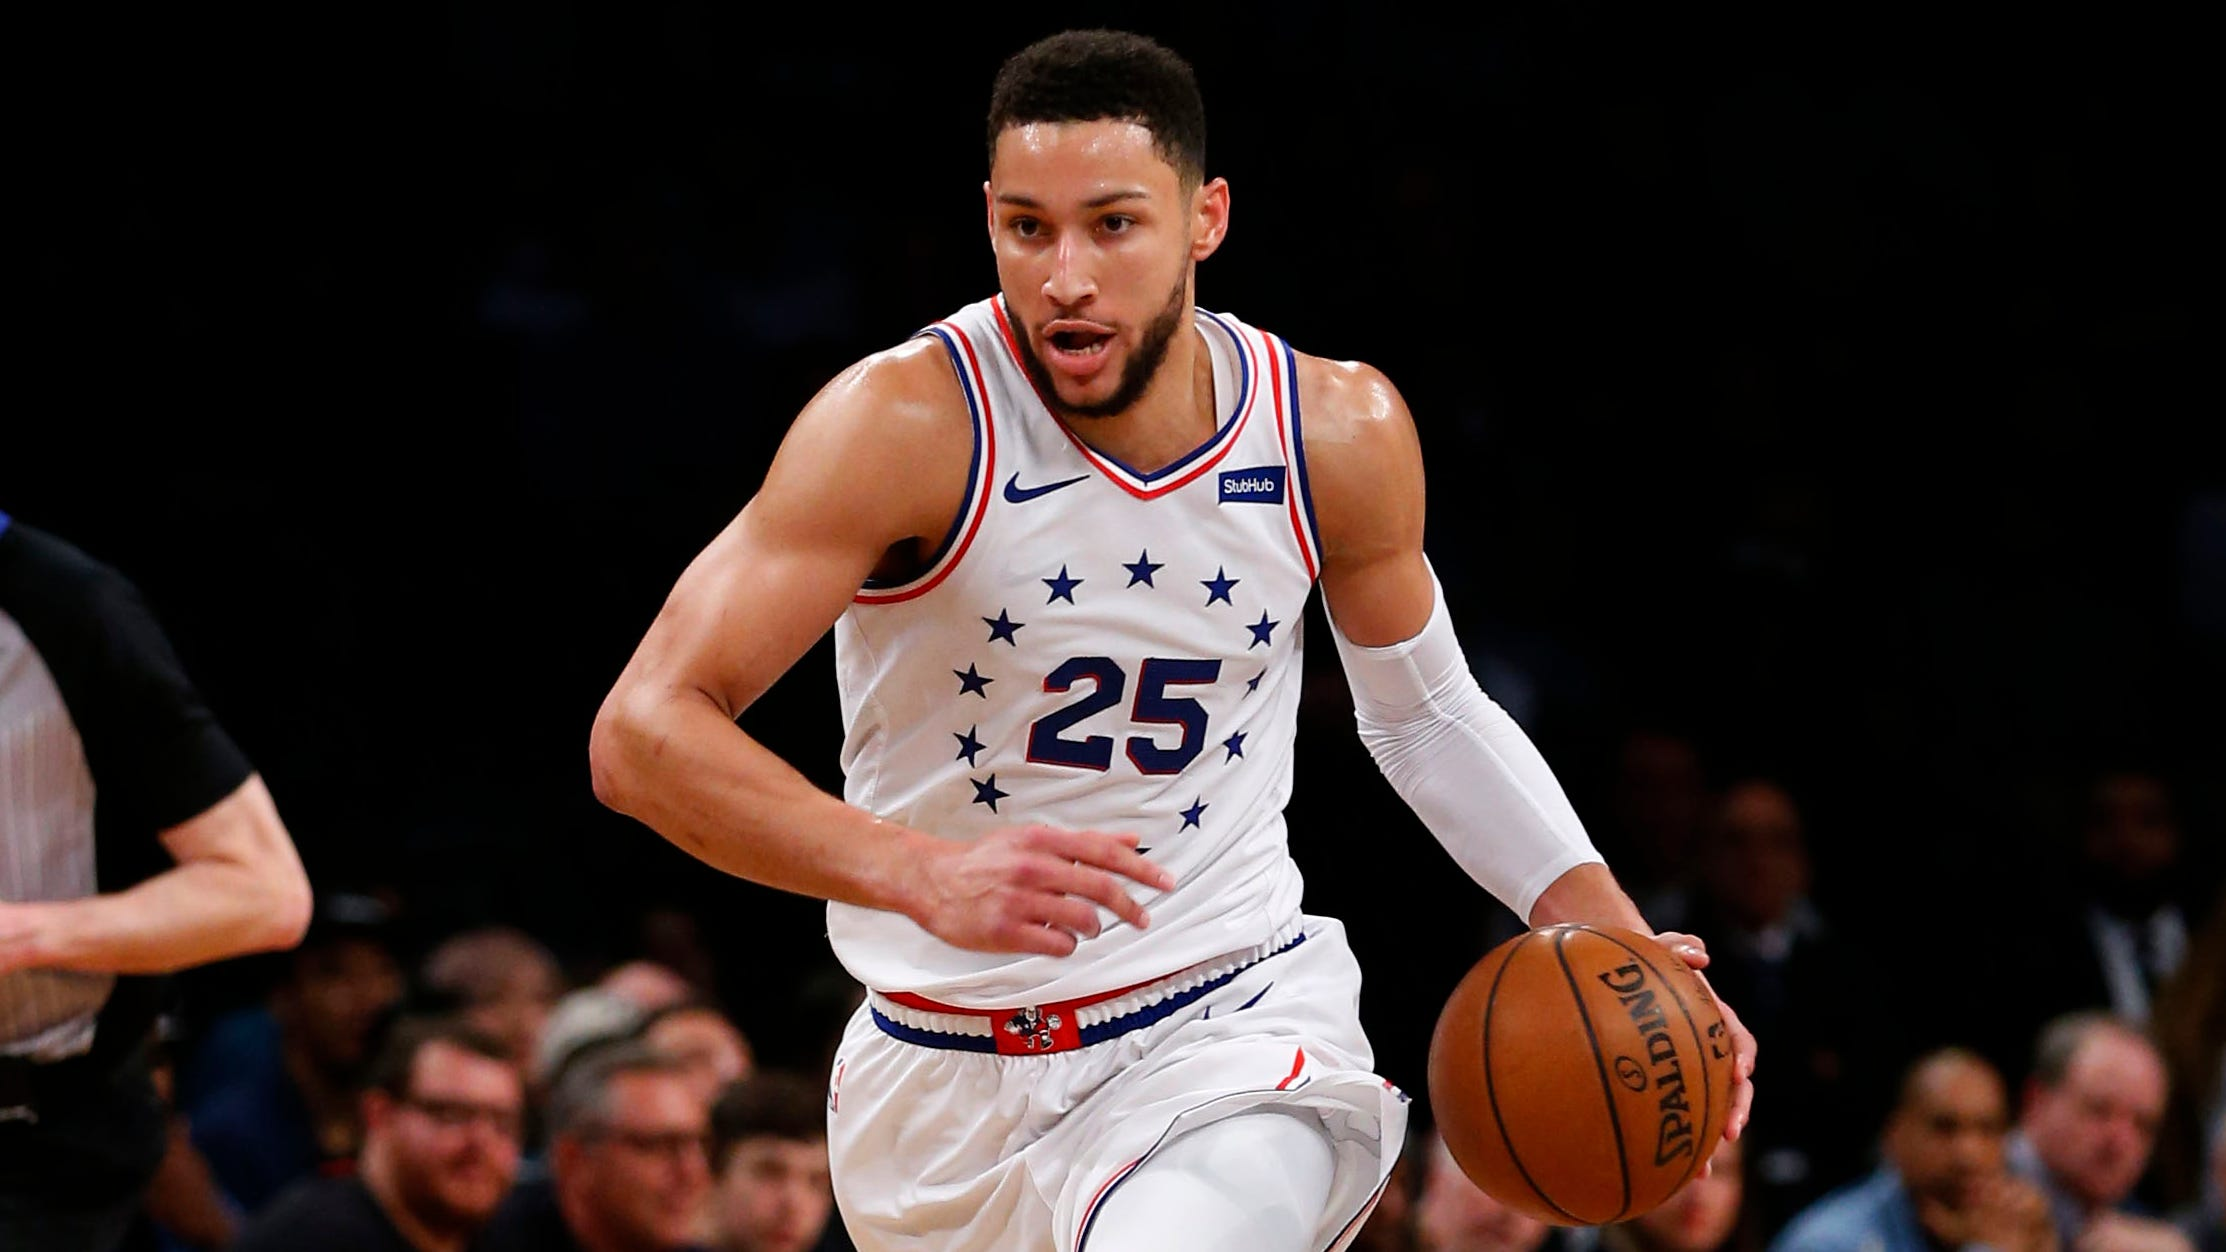 Opinion: Why 76ers guard Ben Simmons won't be fazed by a few boos